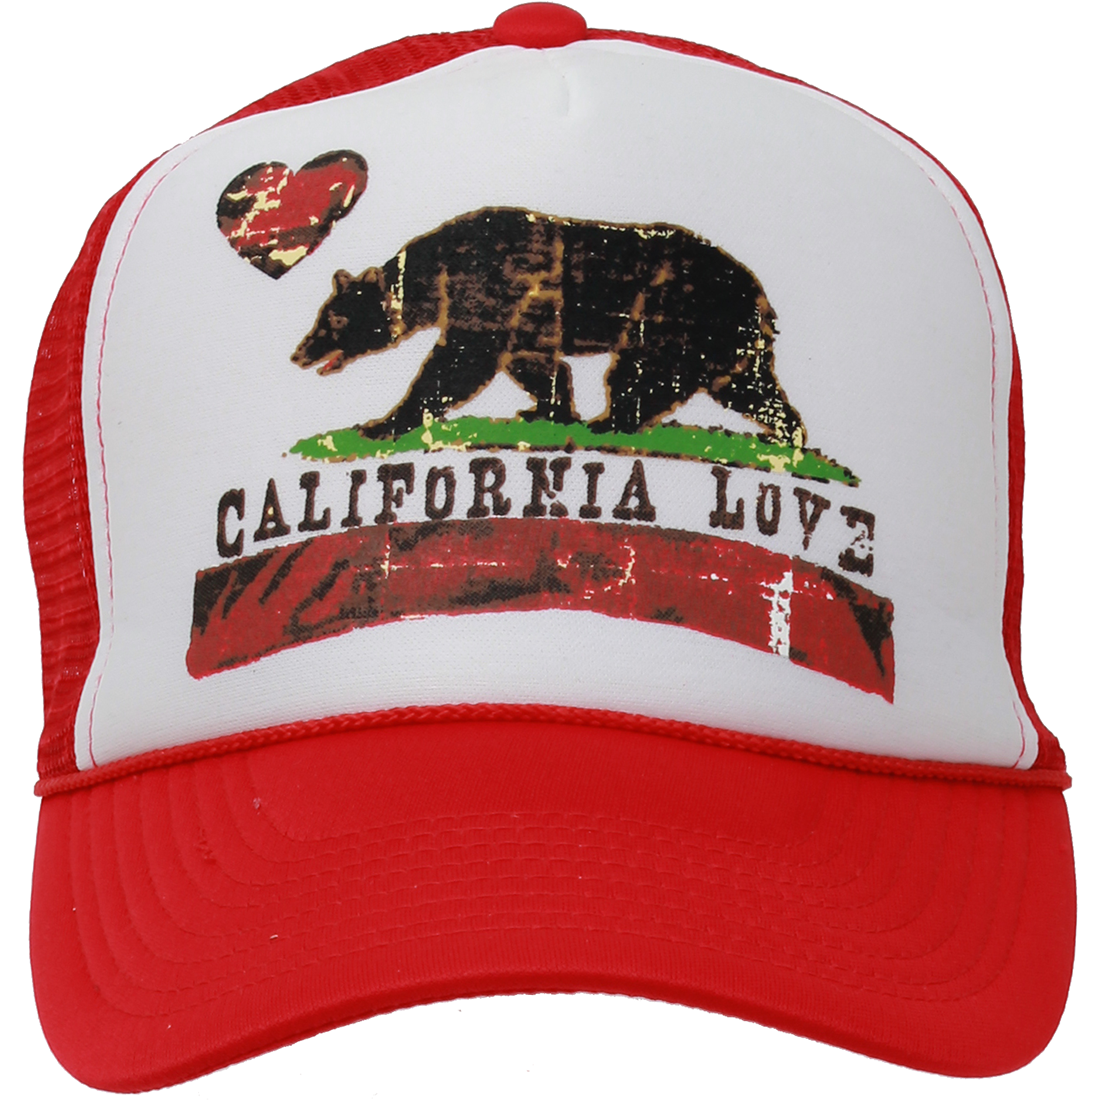 422f9 ab6d6 where to buy california love republic snapback hat distressed  red curve bill white crown bb588 0ab39 ... 1d3e8138f79